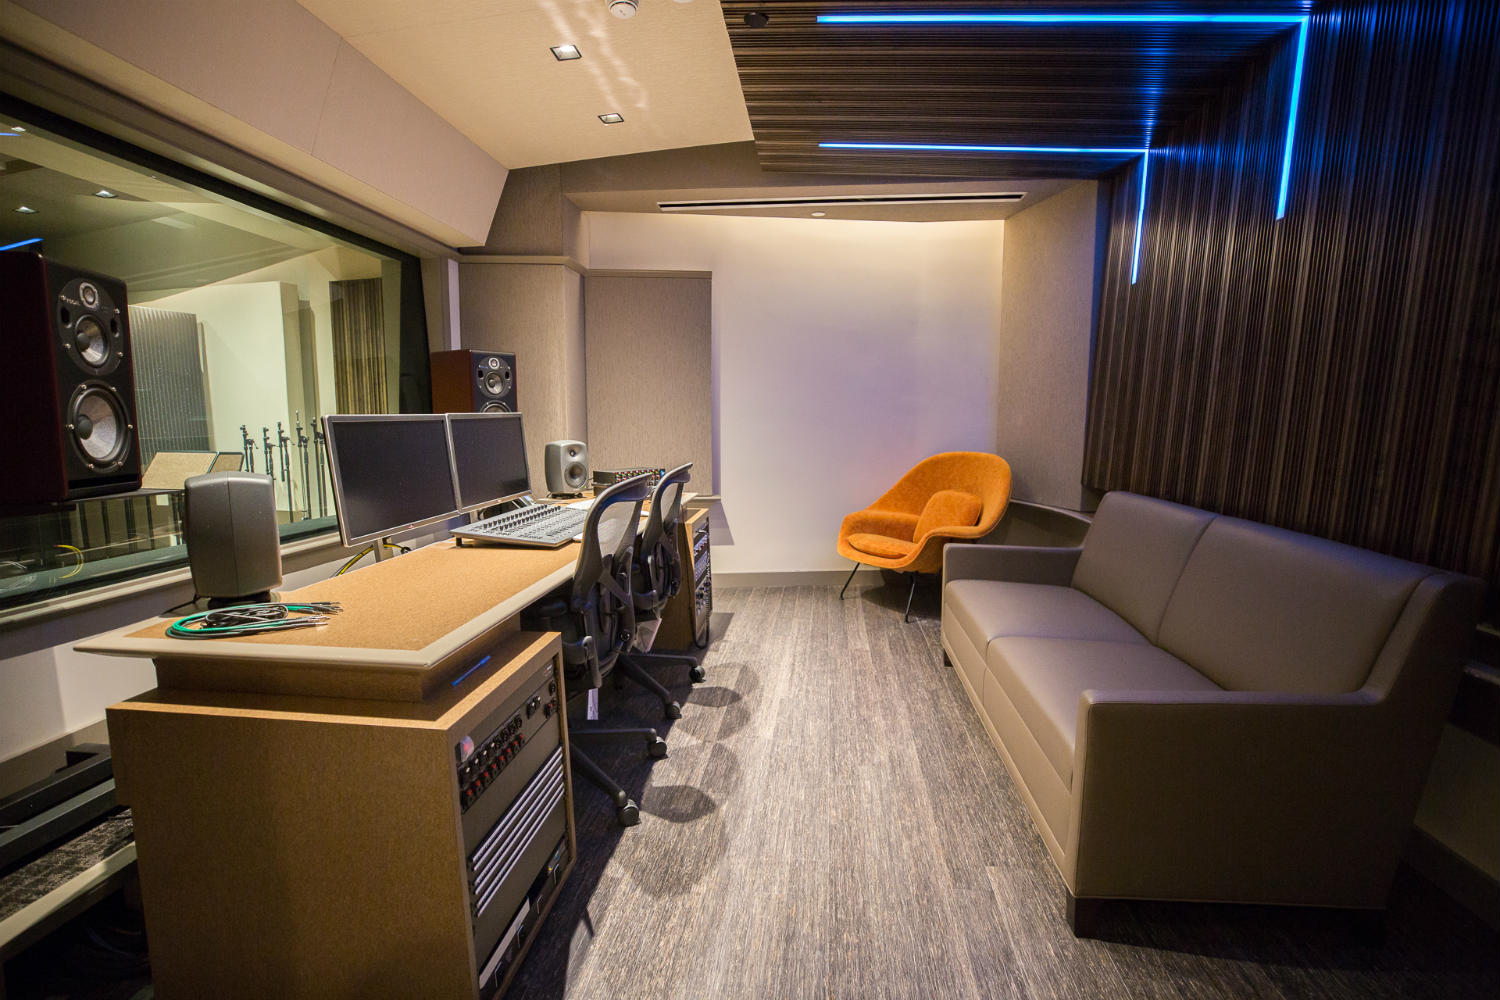 Audible is the world's largest producer/distributor of downloadable audiobooks and other spoken-word entertainment. WSDG was commissioned to design their new state-of-the-art recording studio complex. Control Room A left view